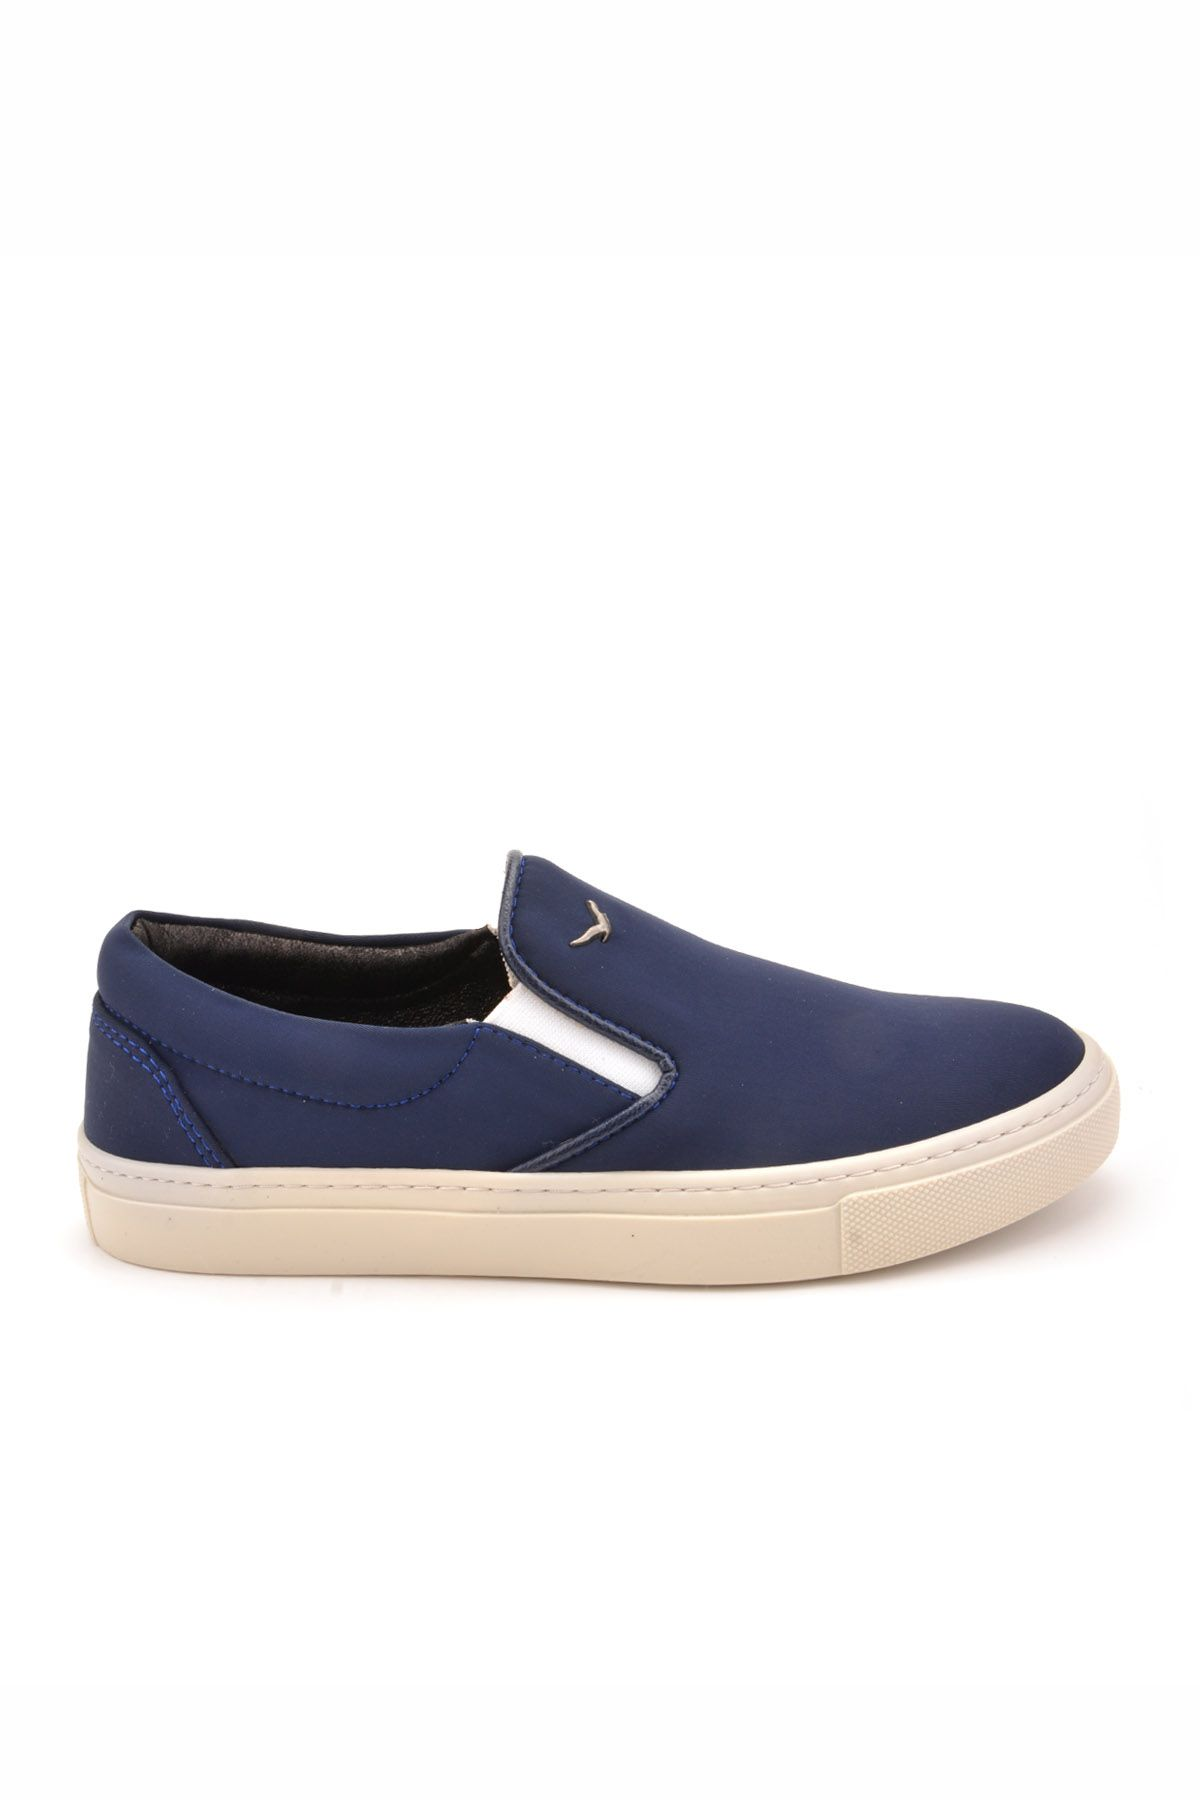 Art Goya Women Sneakers From Neoprene Navy blue